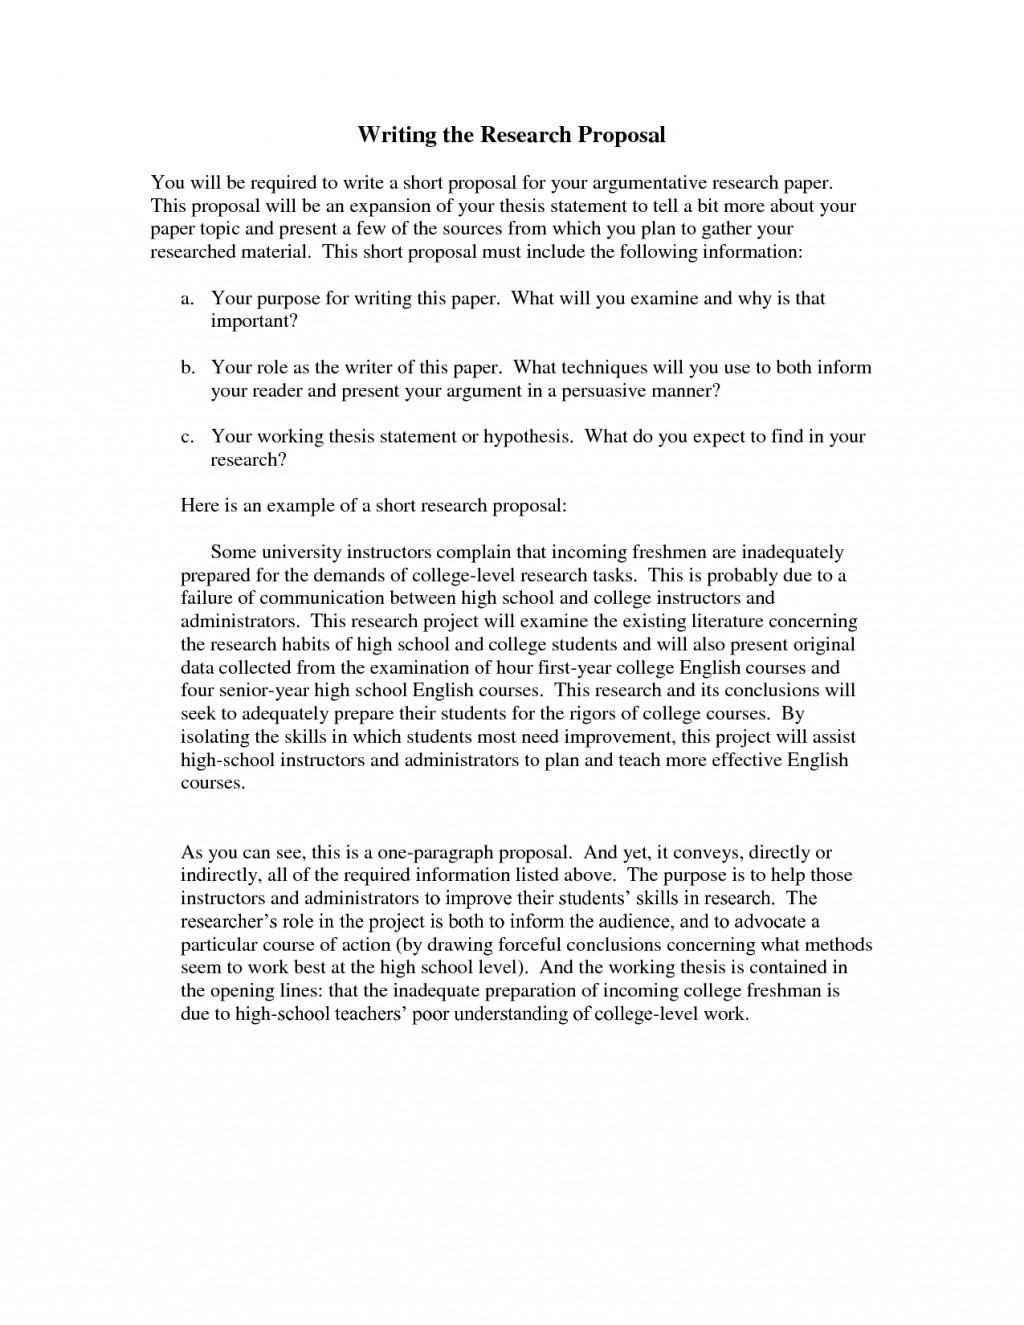 007 Persuasive Research Paper Topics About Health Beautiful Writing Large